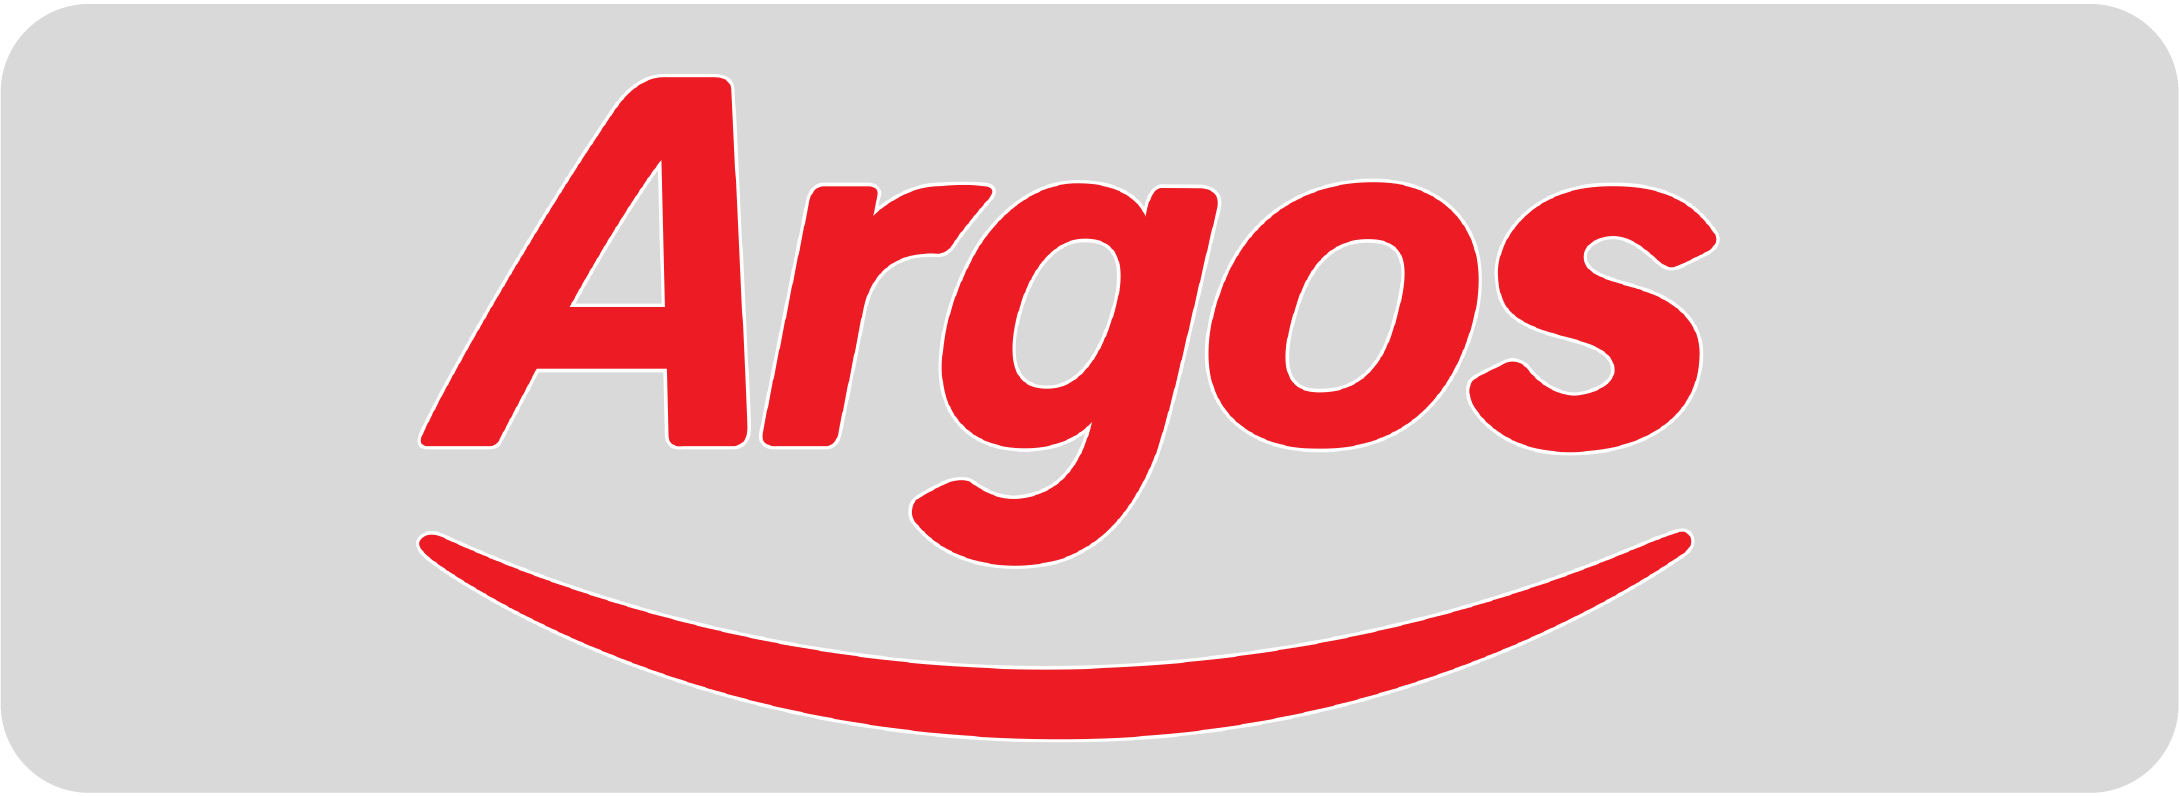 Connected Group Ltd Website Assets_Argos logo.png